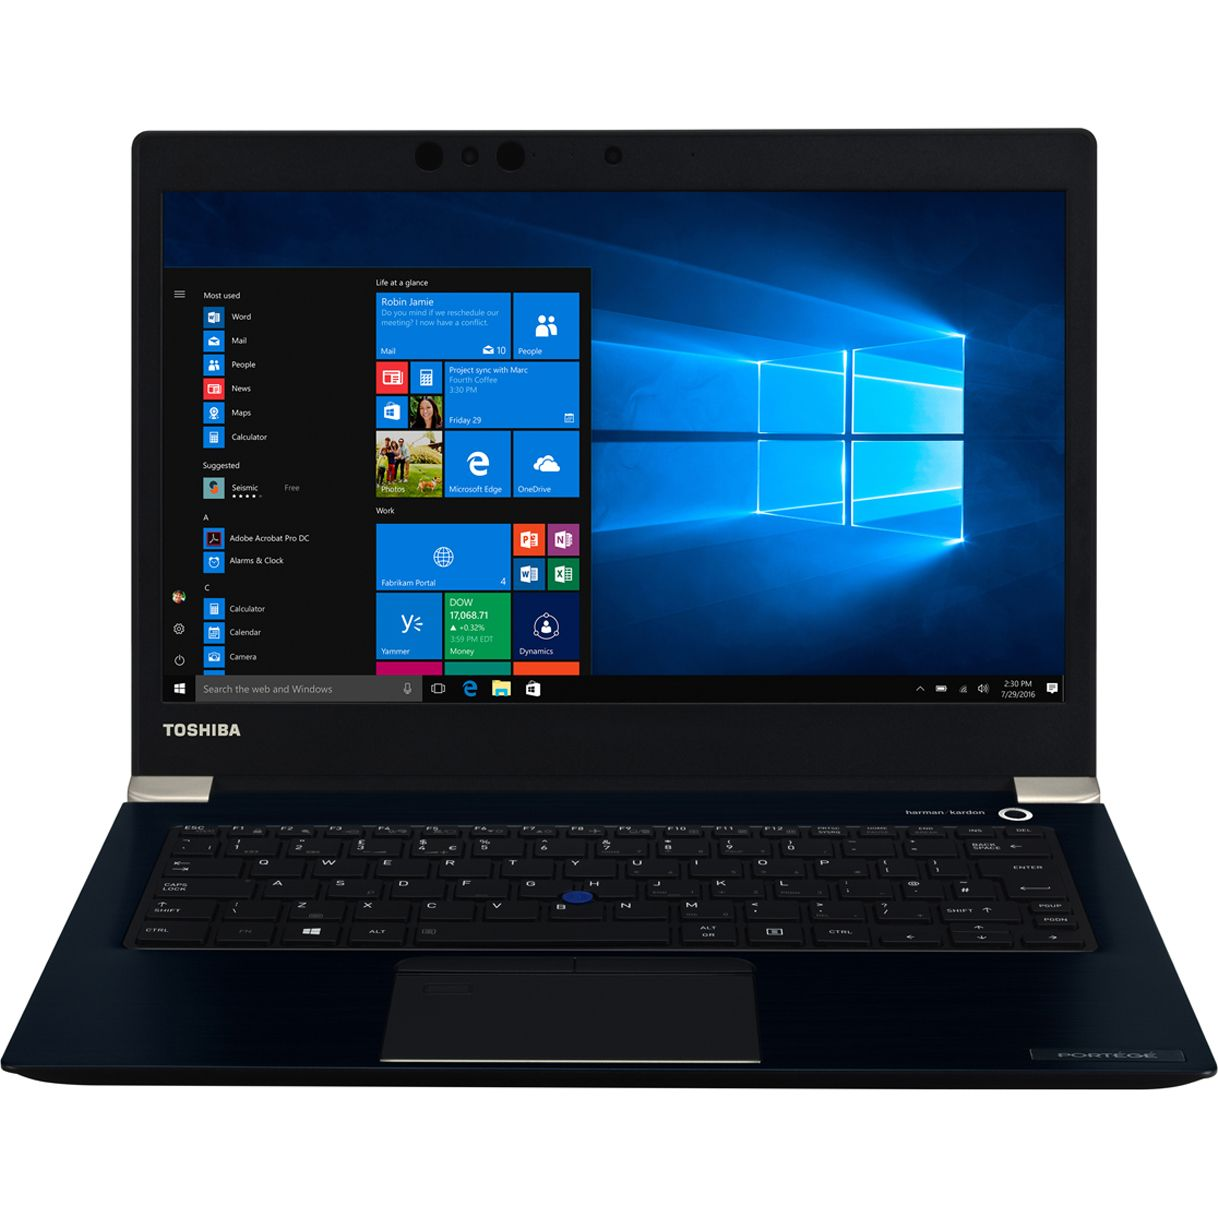 Ultrabook Toshiba Portege X30-E-119 13.3 Full HD Intel Core i7-8550U RAM 8GB SSD 512GB Windows 10 Pro